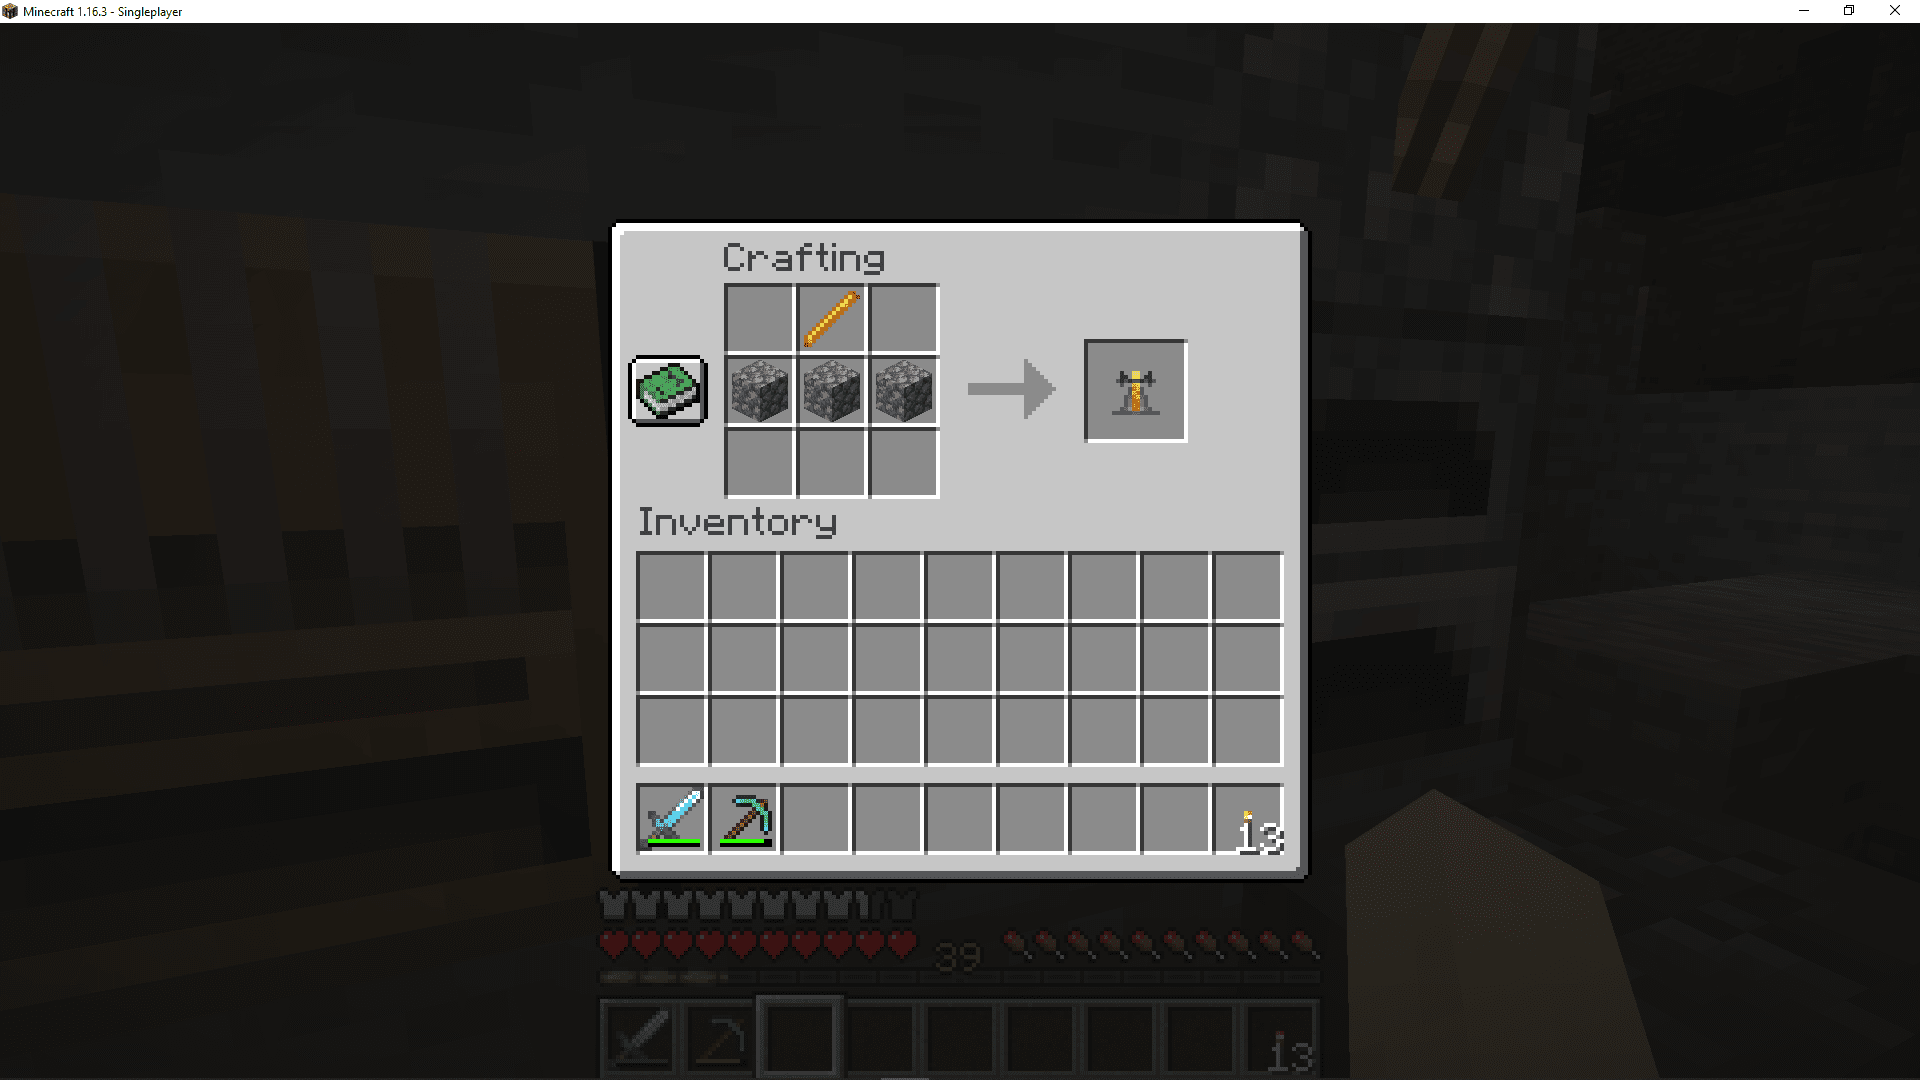 The brewing stand recipe in Minecraft.